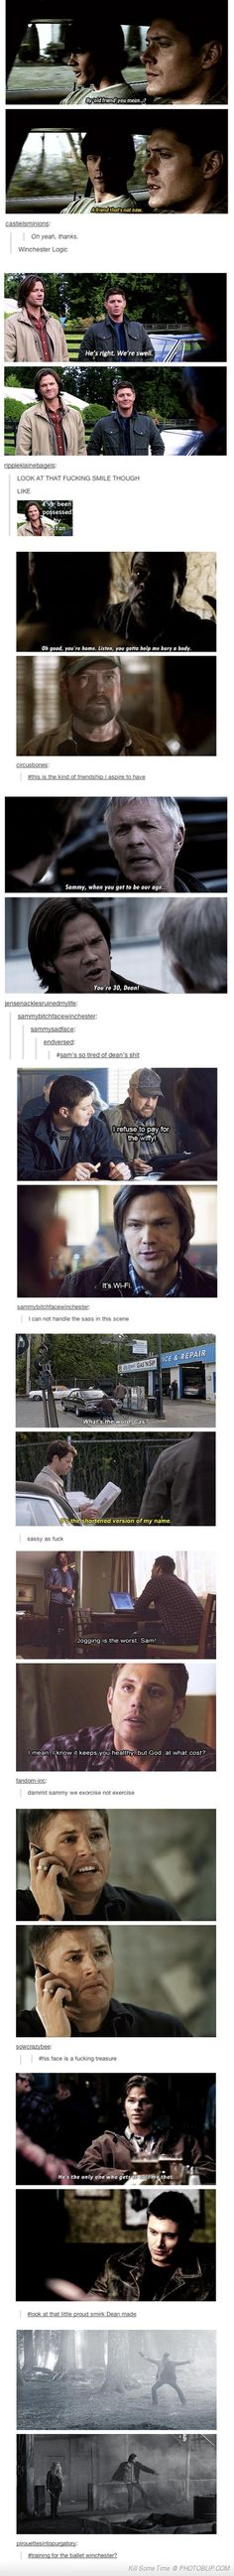 Best of Supernatural on Tumblr